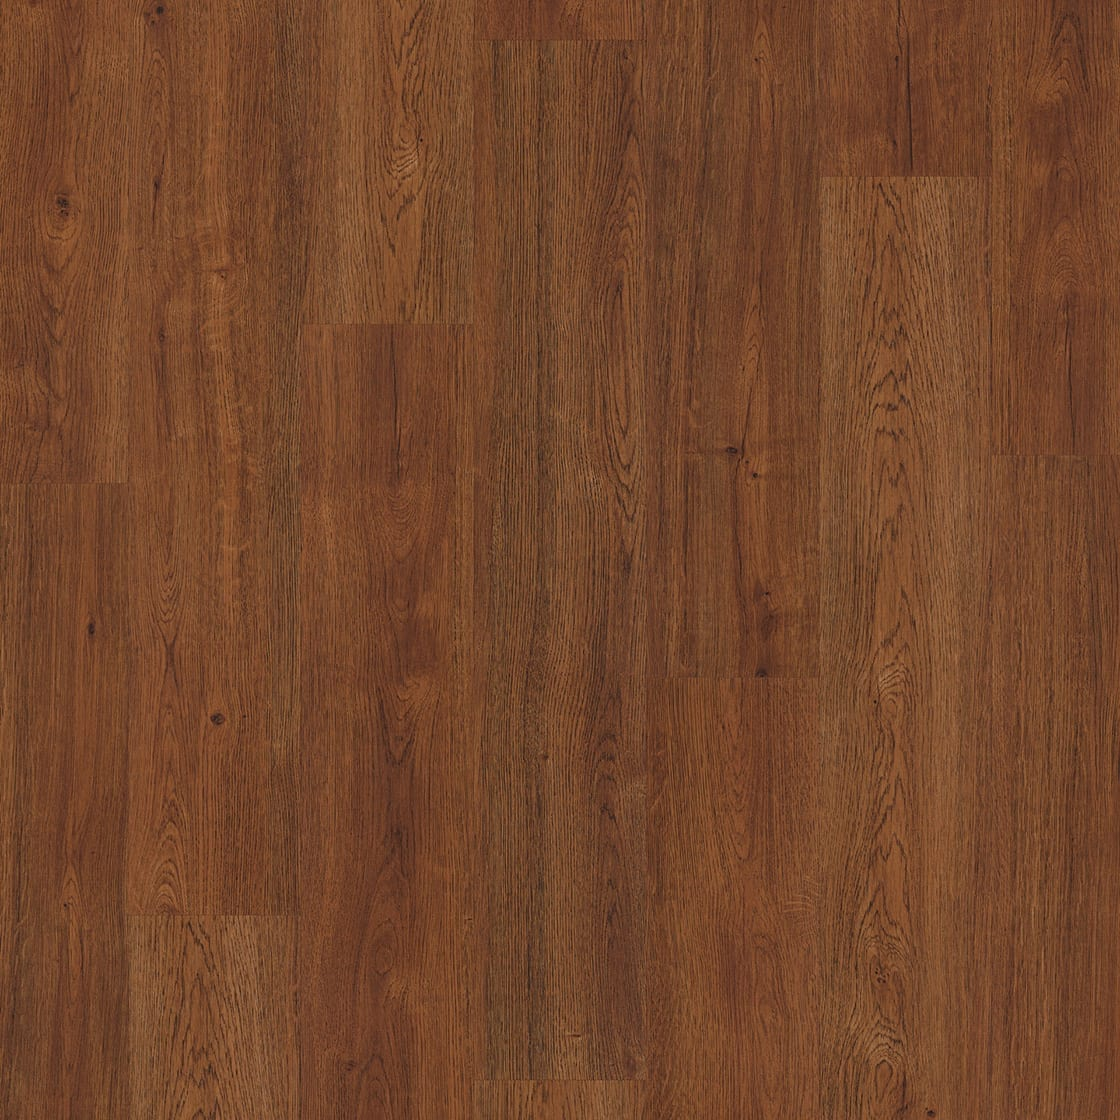 KP101 Warm Brushed Oak OH